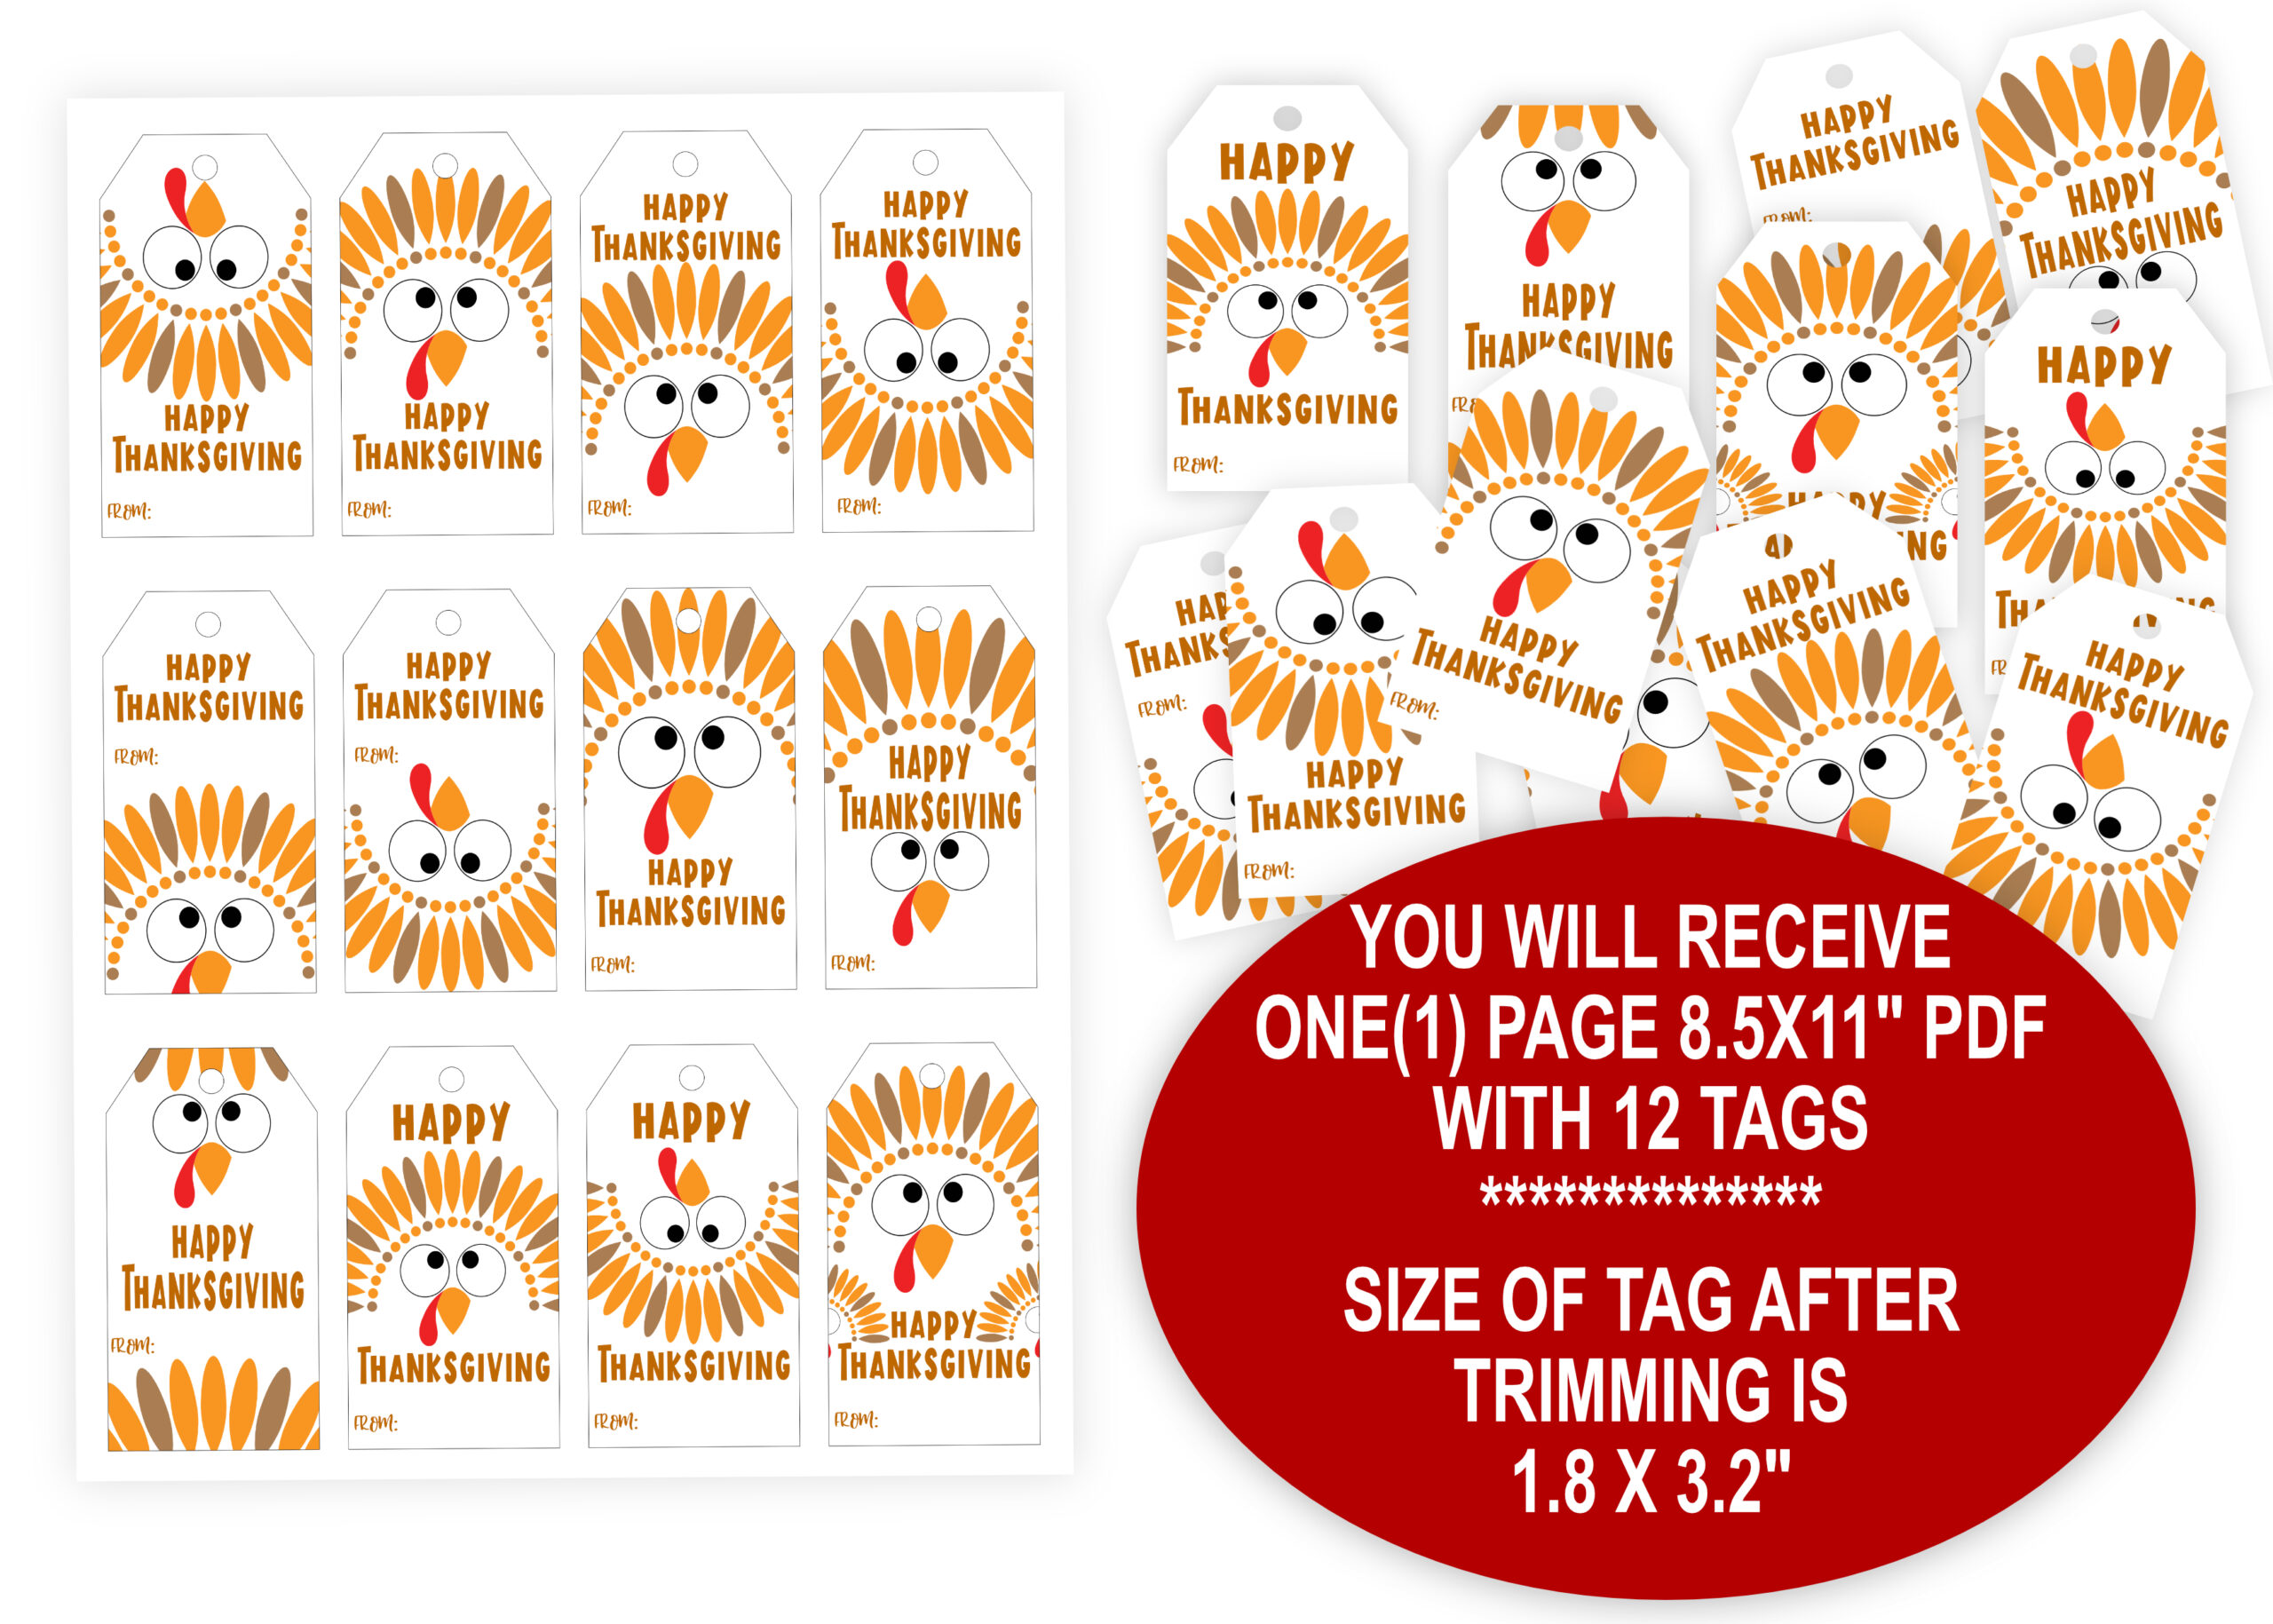 GIFT TAGS | THANKS YOU TAGS Happy Thanksgiving Tags Digital